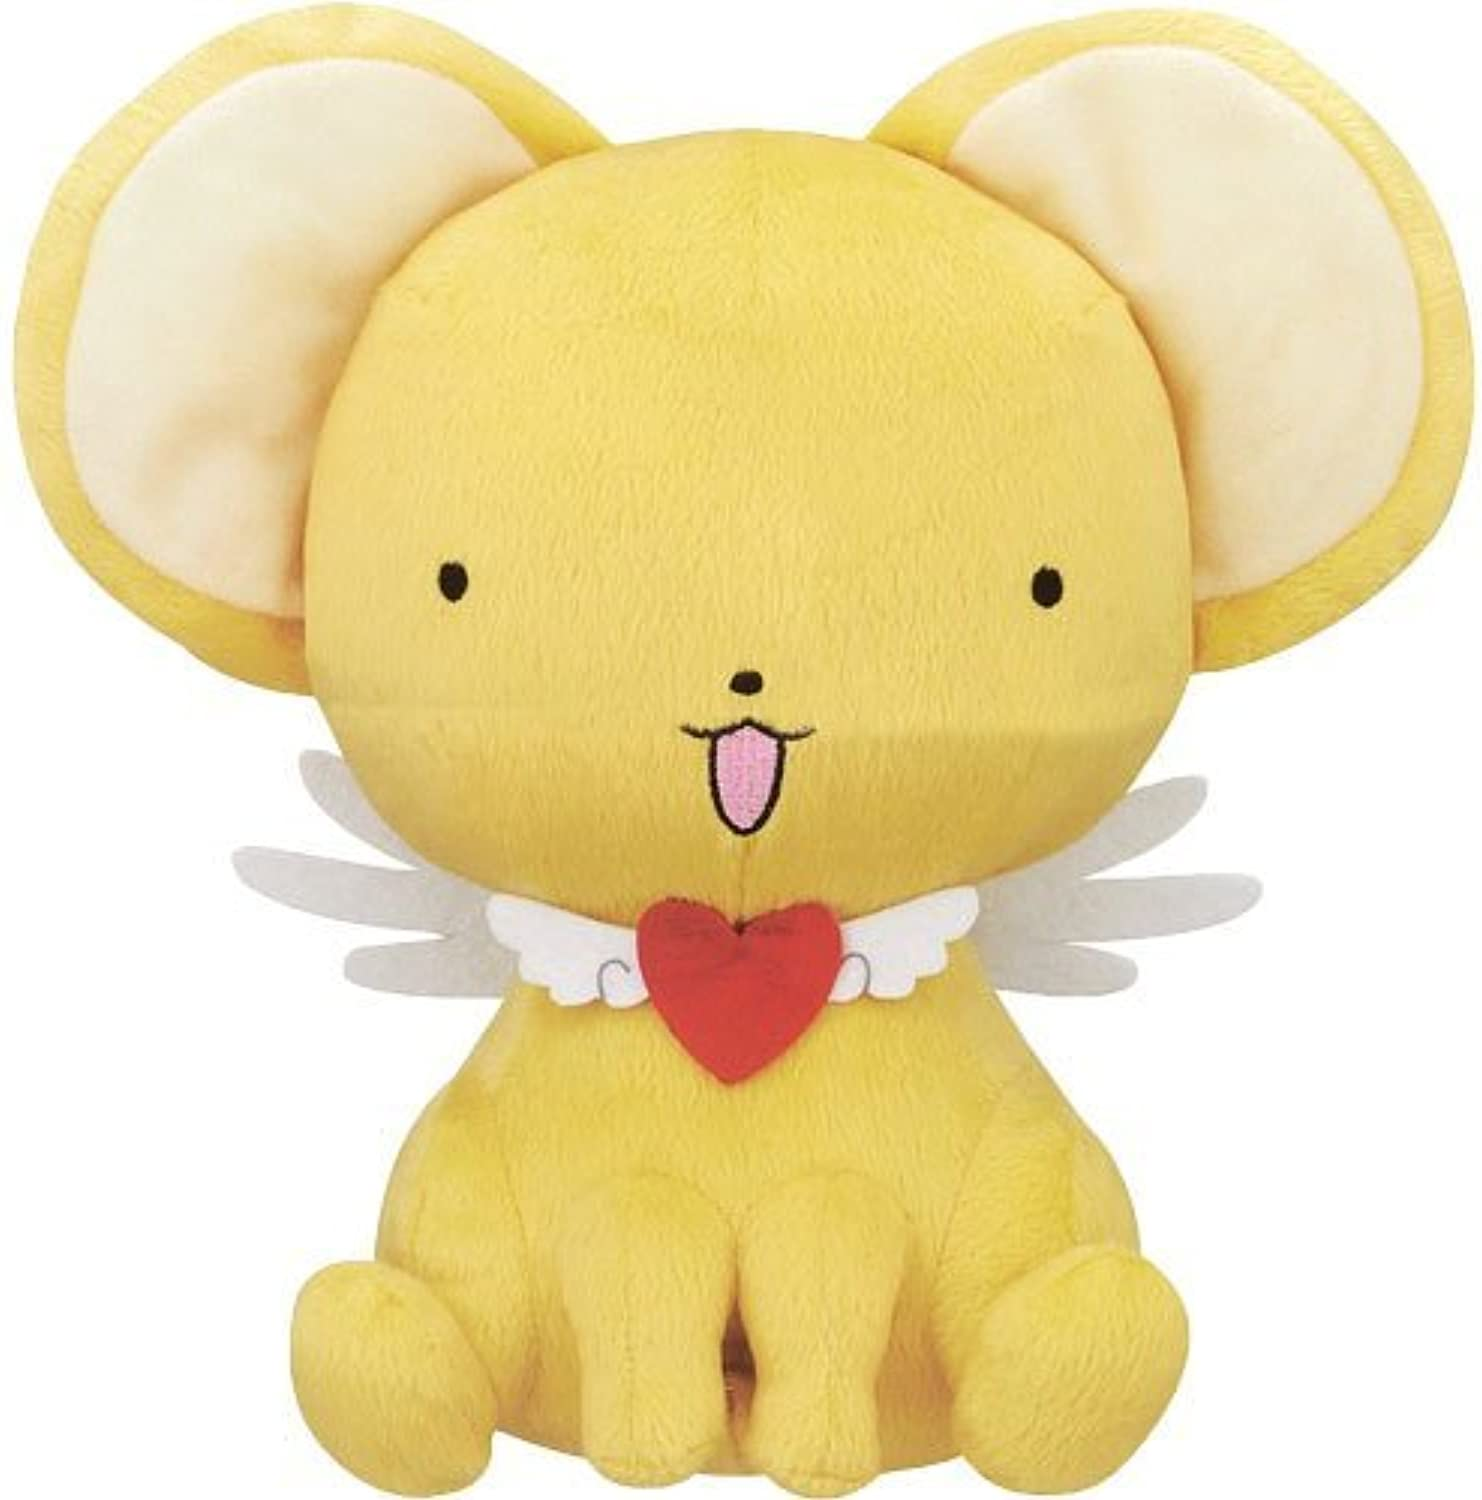 Card Captor Sakura Super DX Plush Toy  Cerberus appeared Hen  A front separately